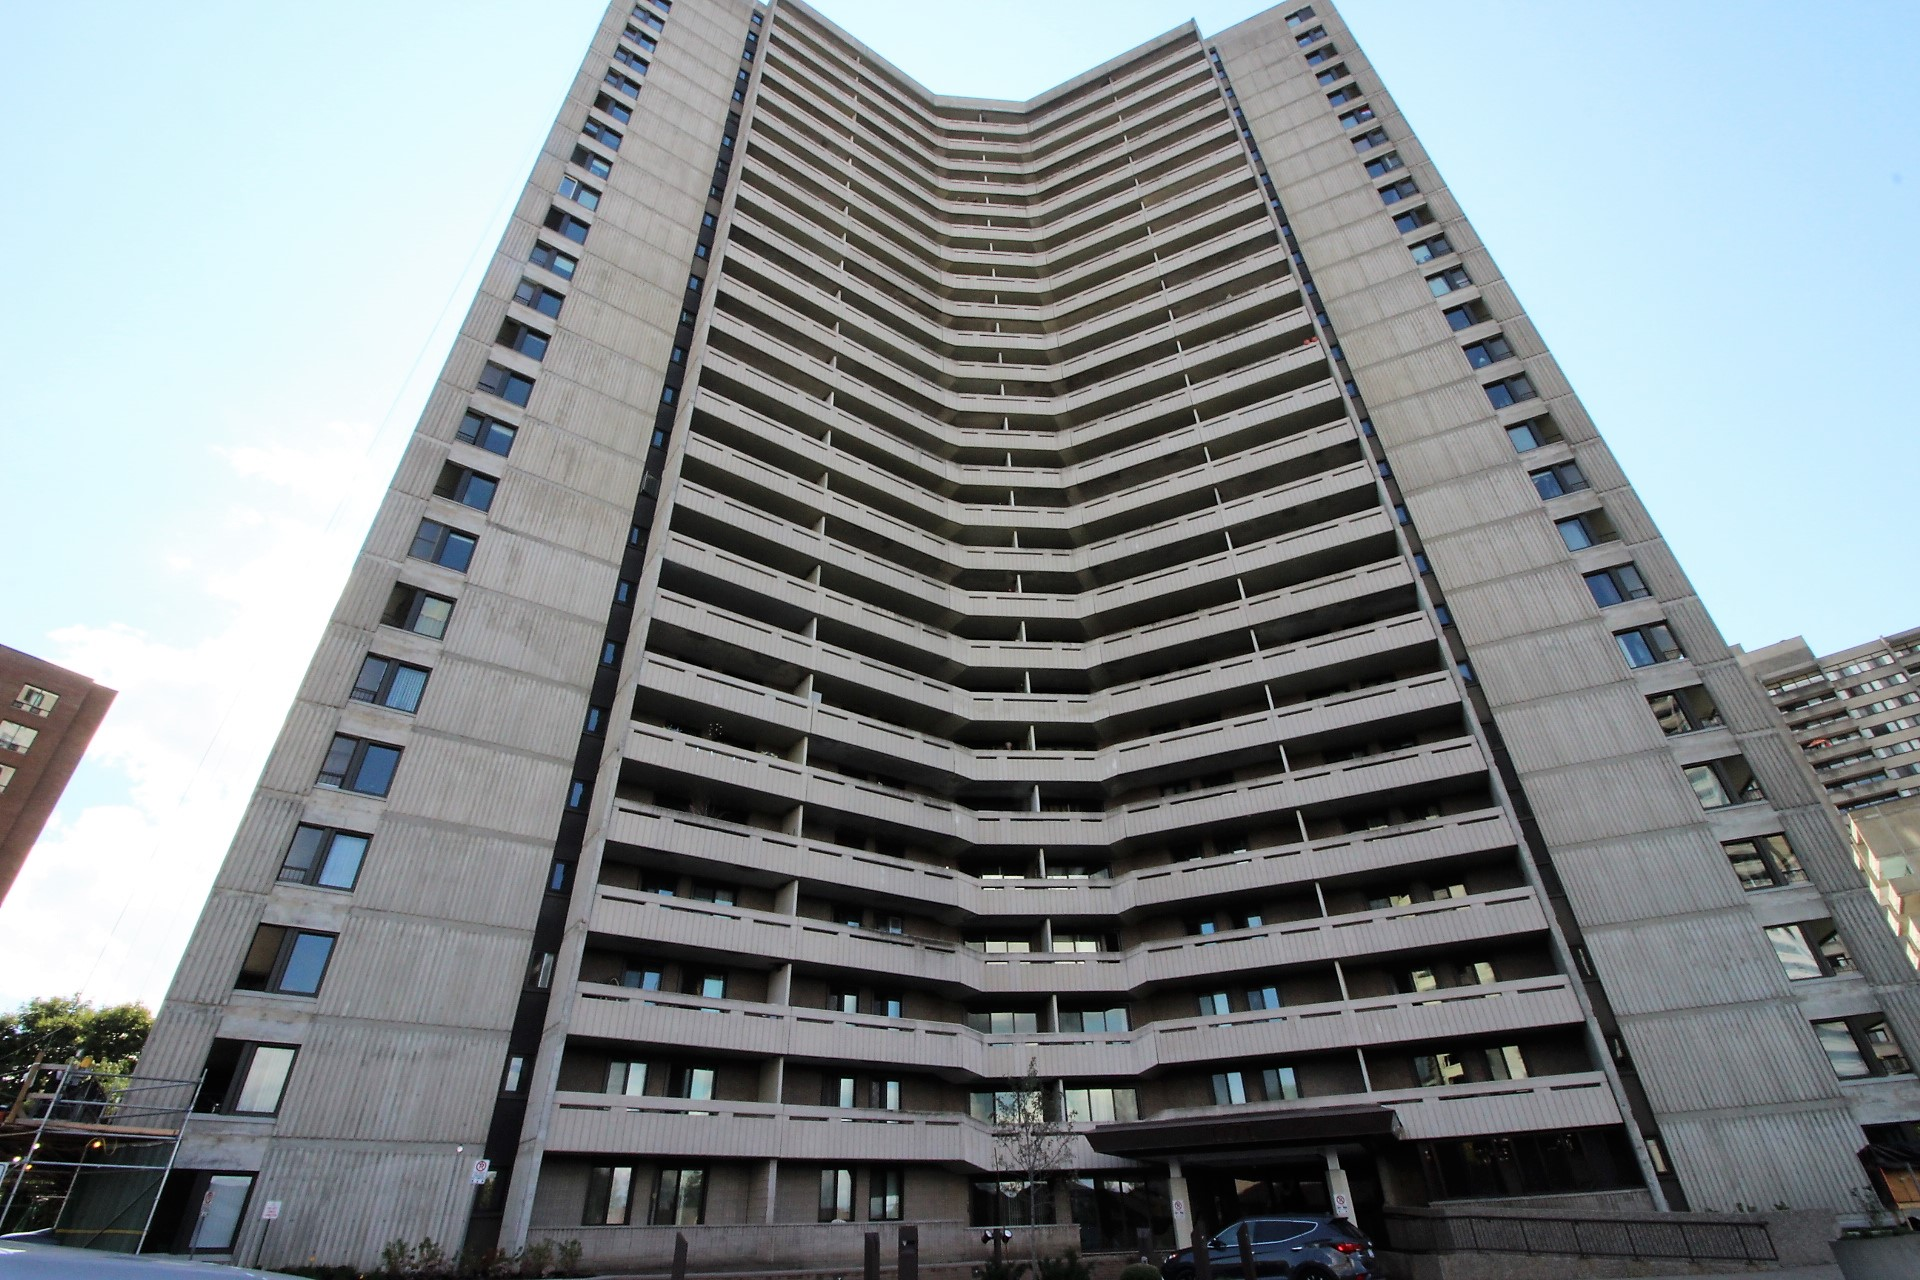 1609-1171 Ambleside Dr - Resort Style Living with Wonderful Views in Western Parkway-Woodroffe Area!